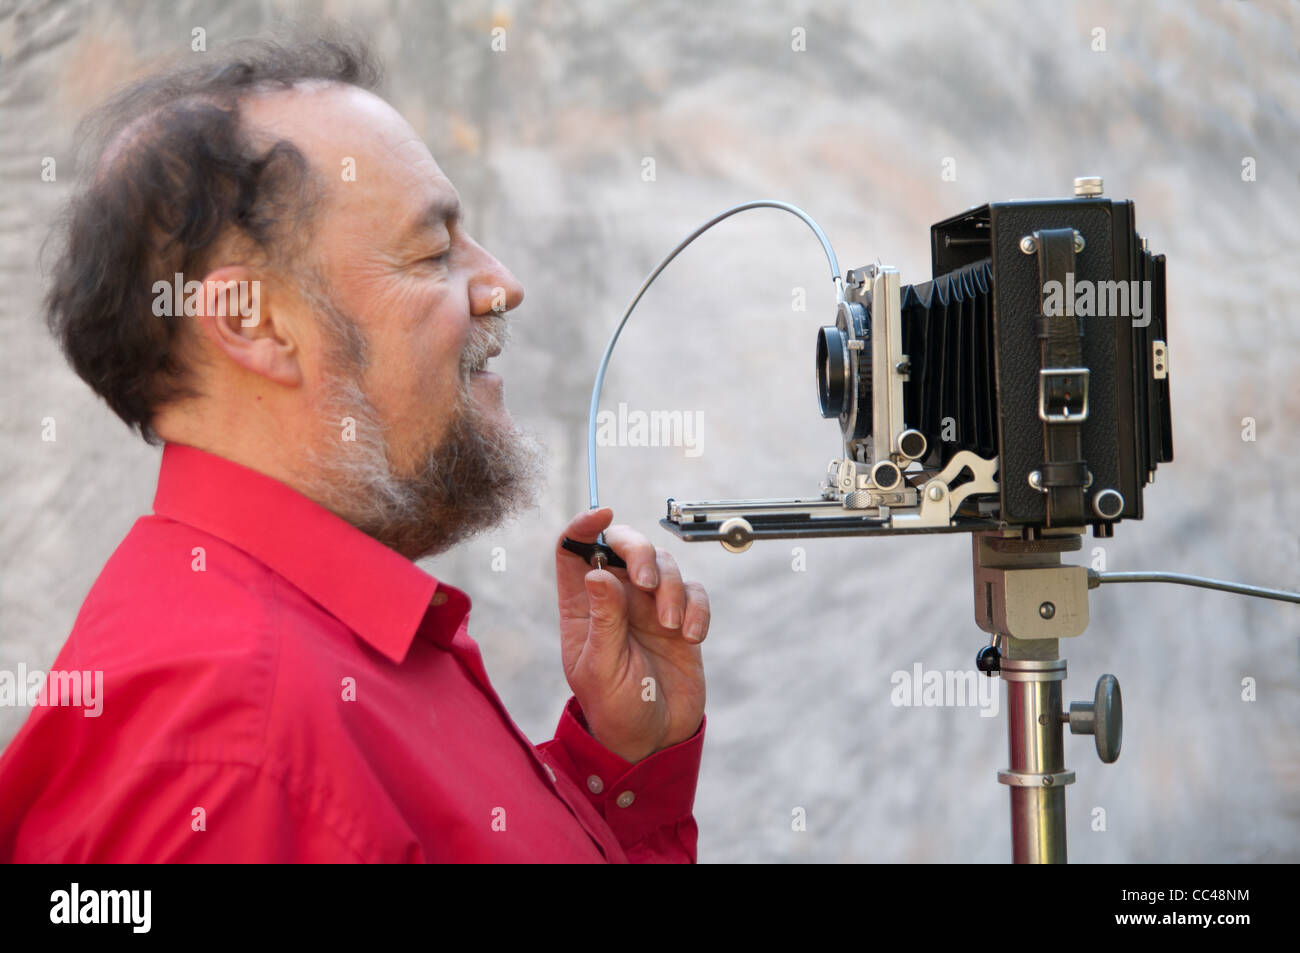 A photographer attempts to take a self portrait with a large format camera - Stock Image